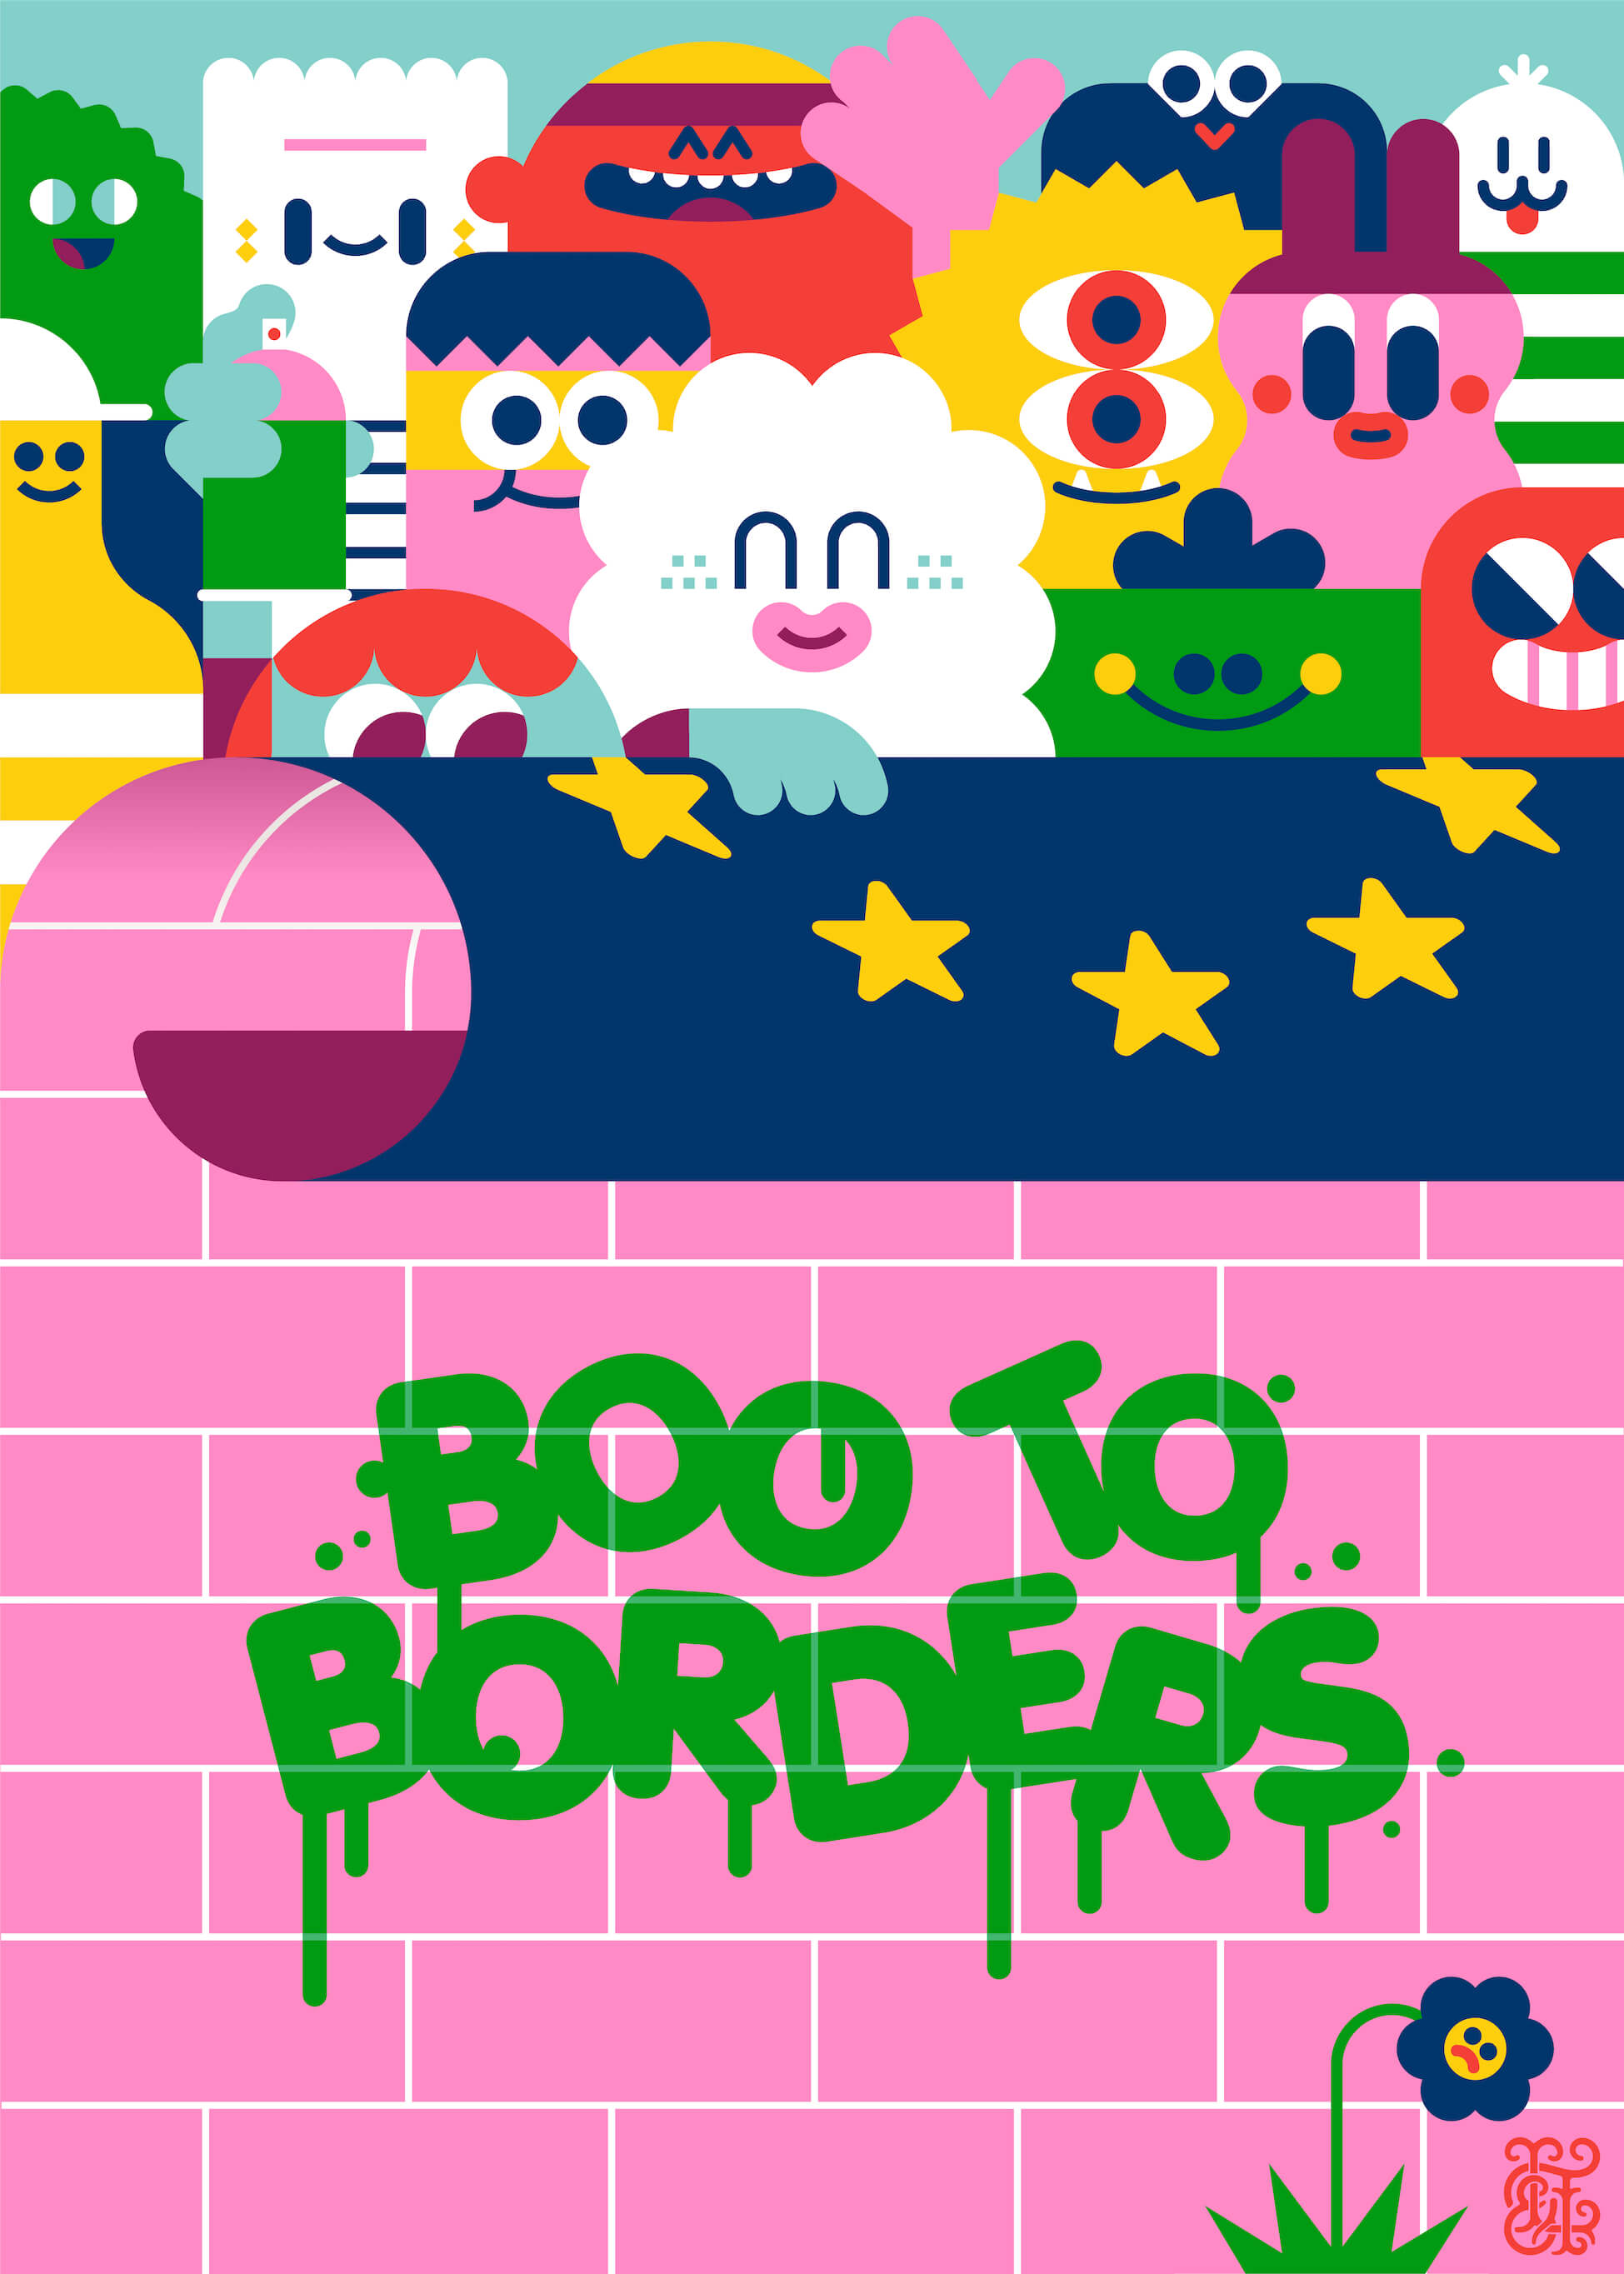 Boo To Borders main image